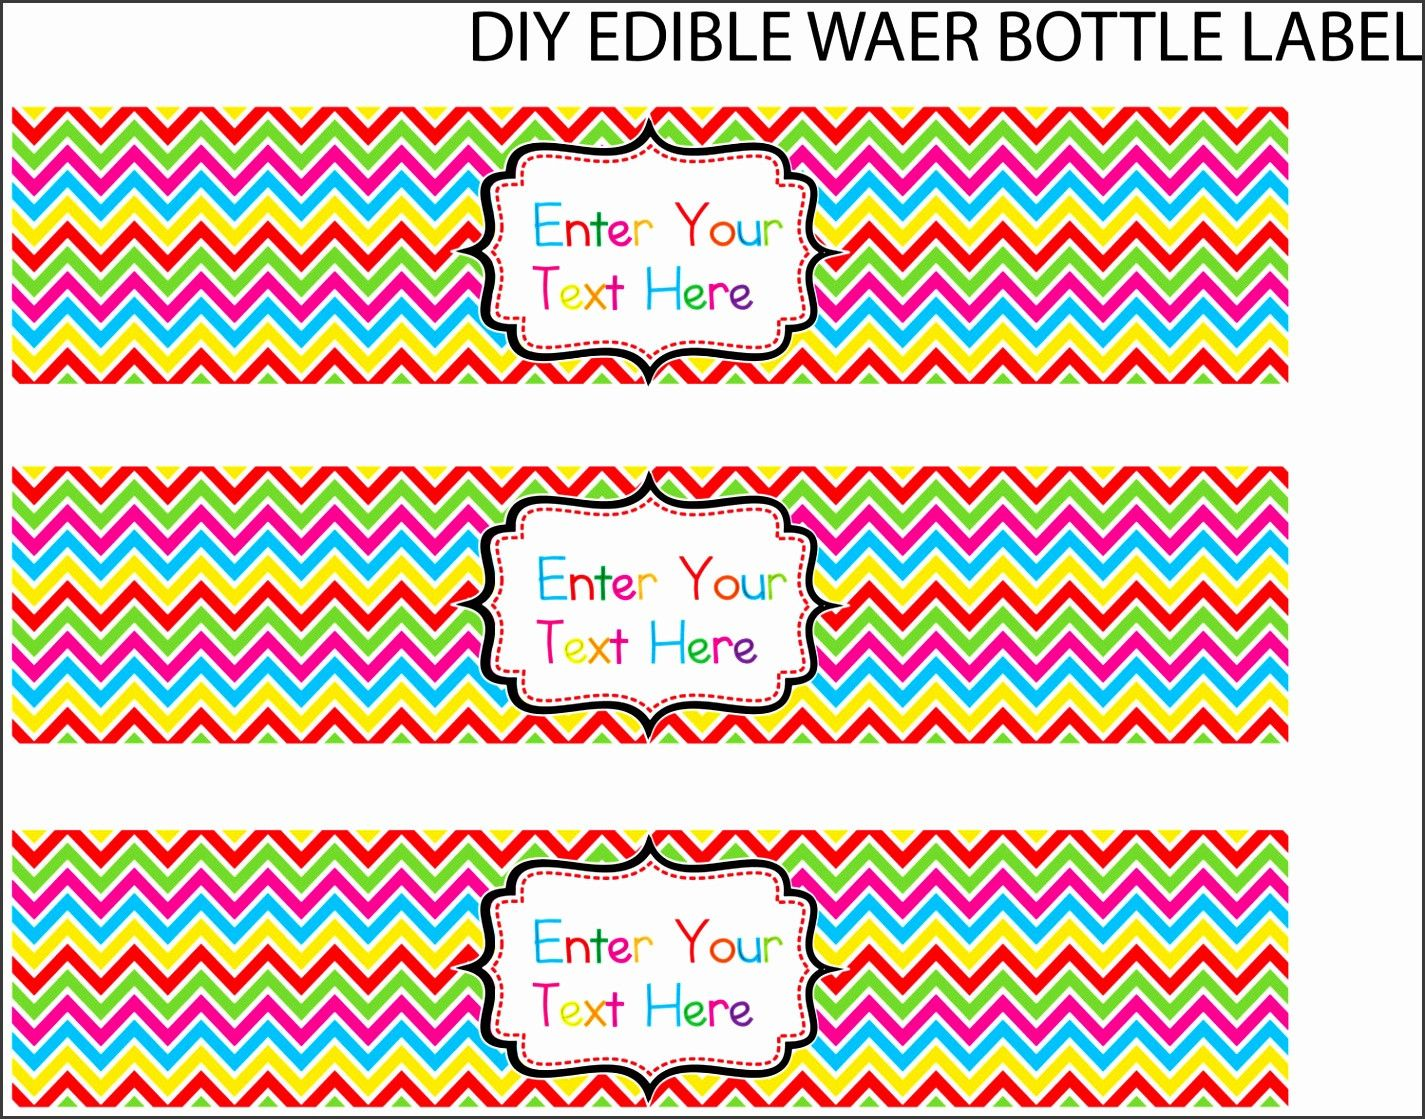 Water Bottle Label Template Free Word Awesome 8 Water Bottle Label Template Free Word Sample Water Bottle Labels Template Bottle Label Template Label Templates Water bottle labels template word